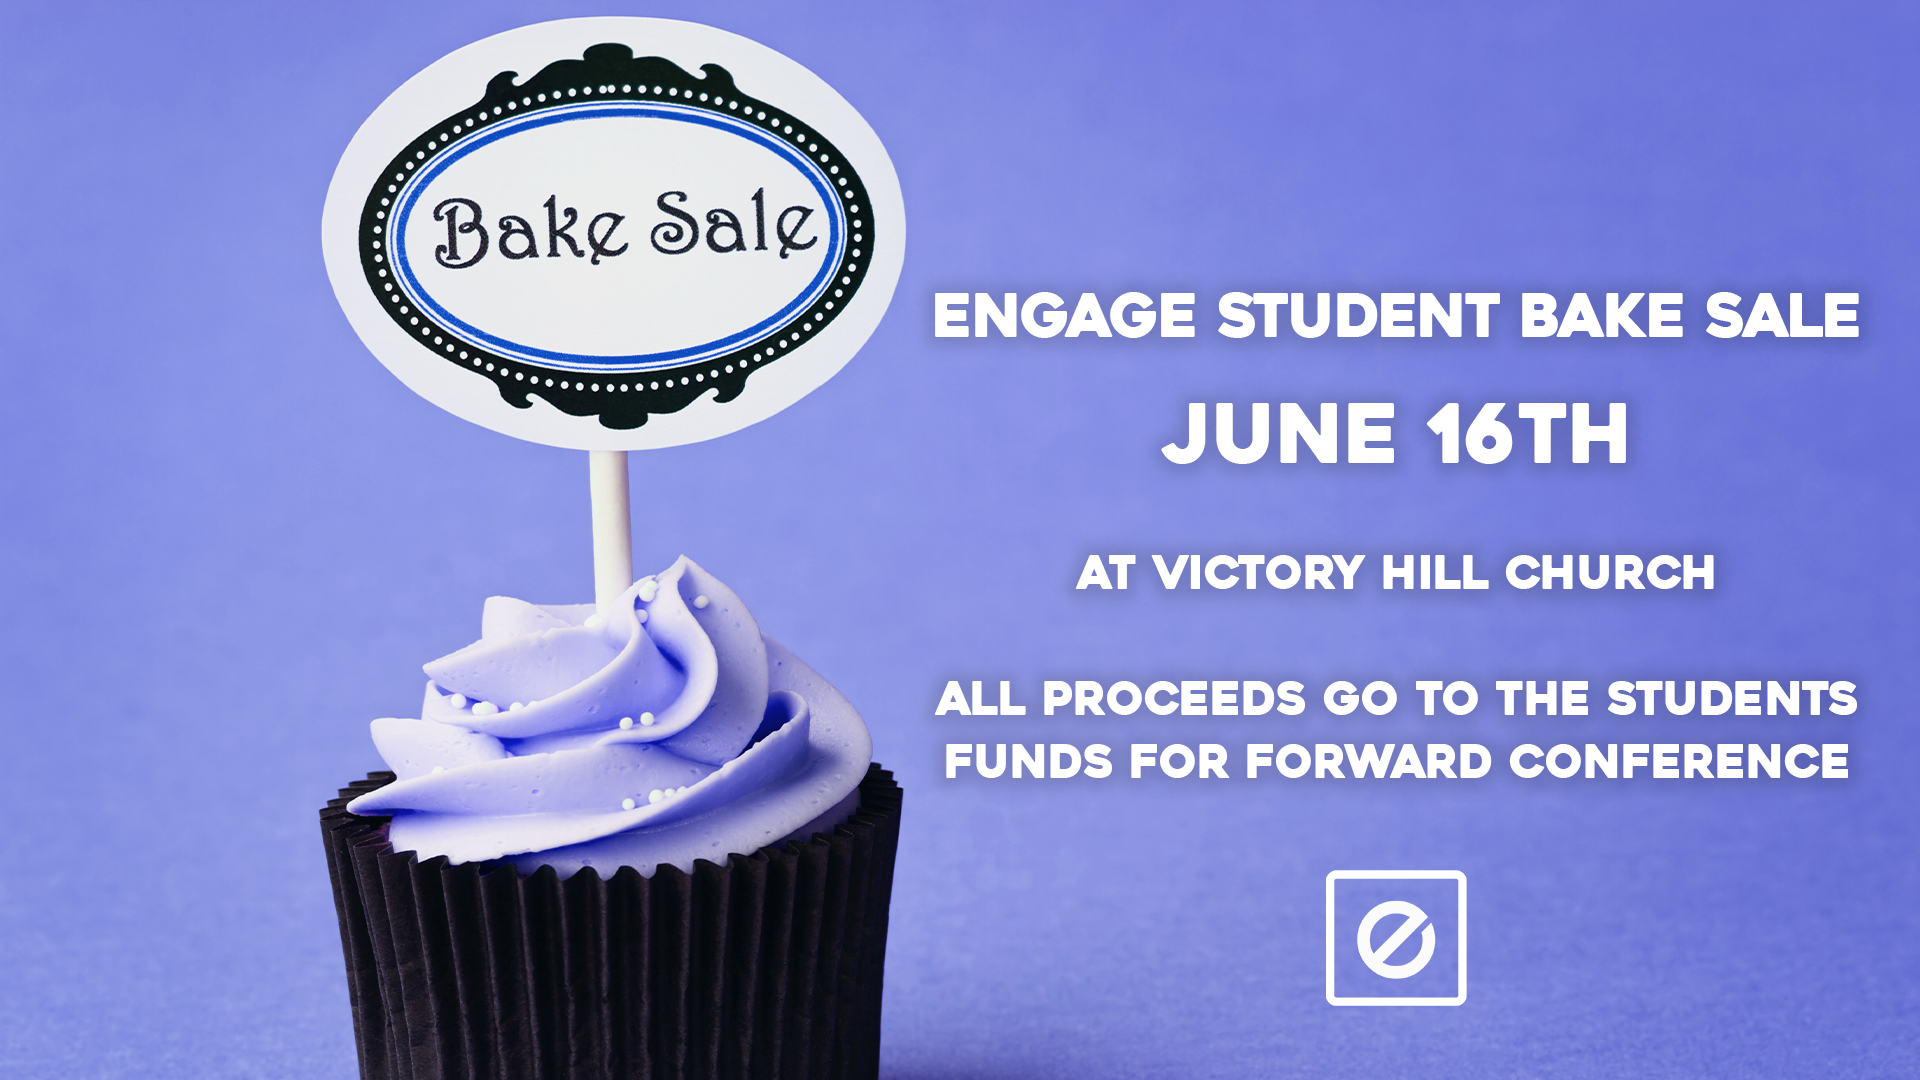 StudentBakeSale.png